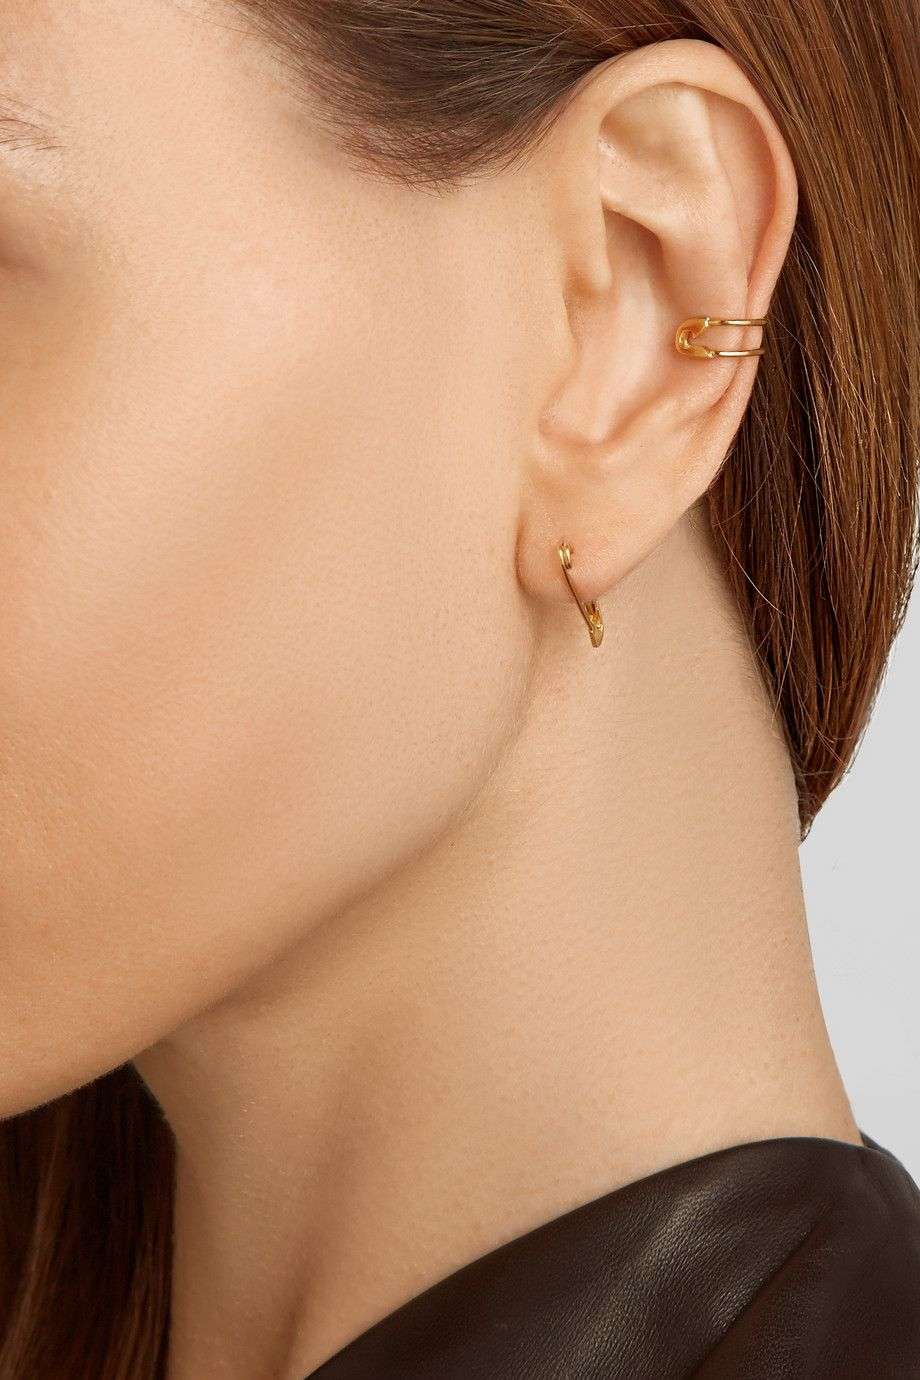 Iam By Ileana Makri  Safety Pin 10karat Gold Ear Cuff